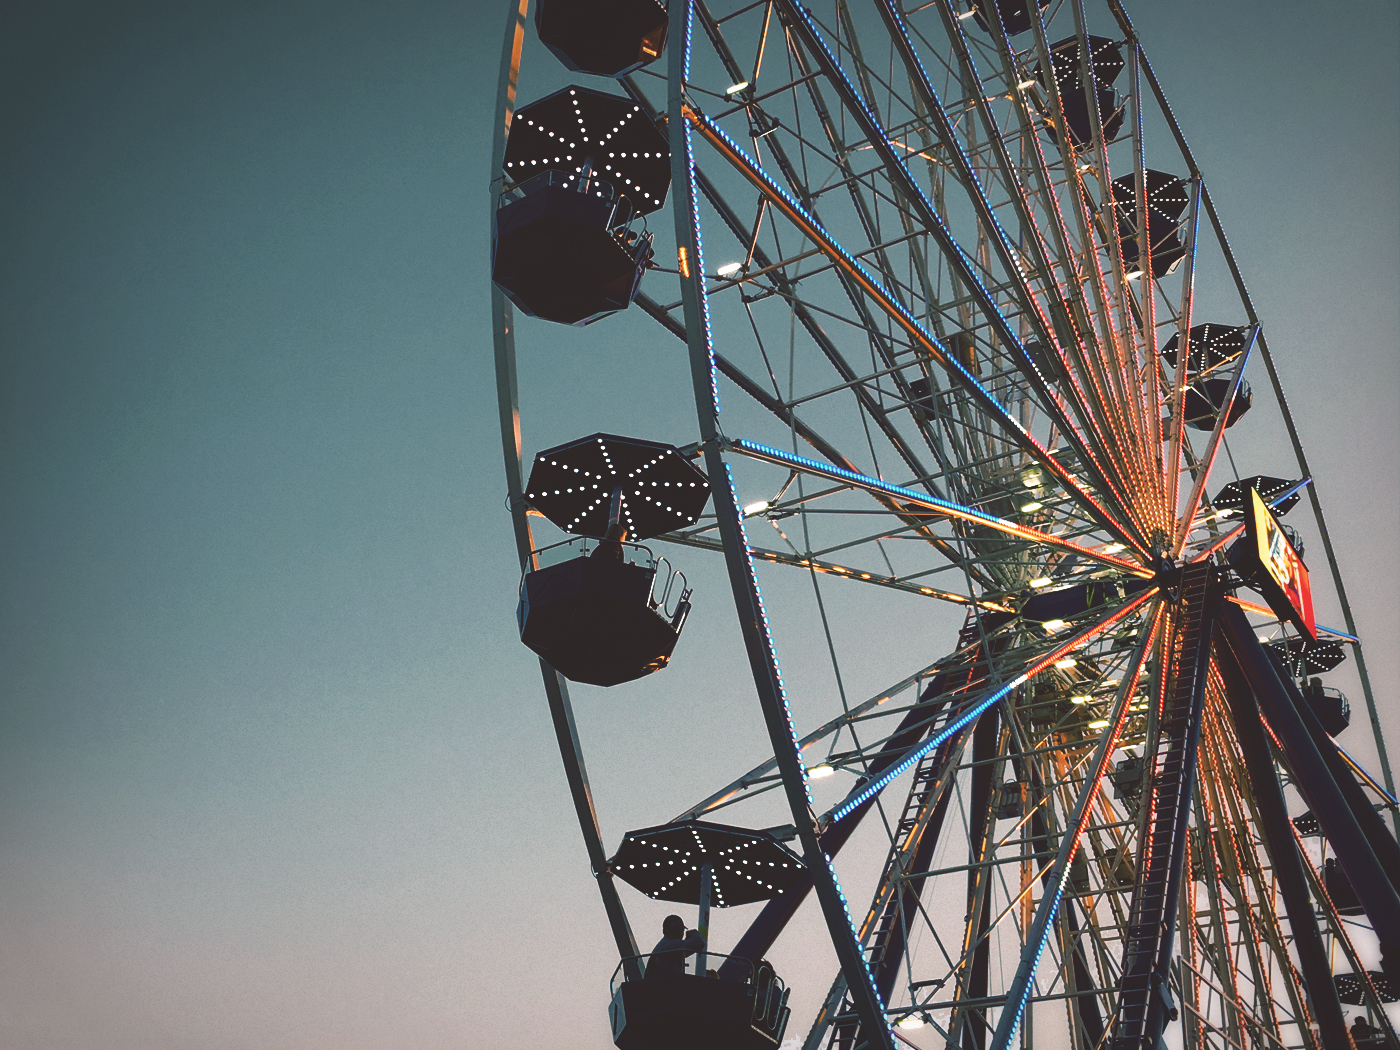 North Carolina State Fair Ferris Wheel at dusk. Photo by Scott Gates.